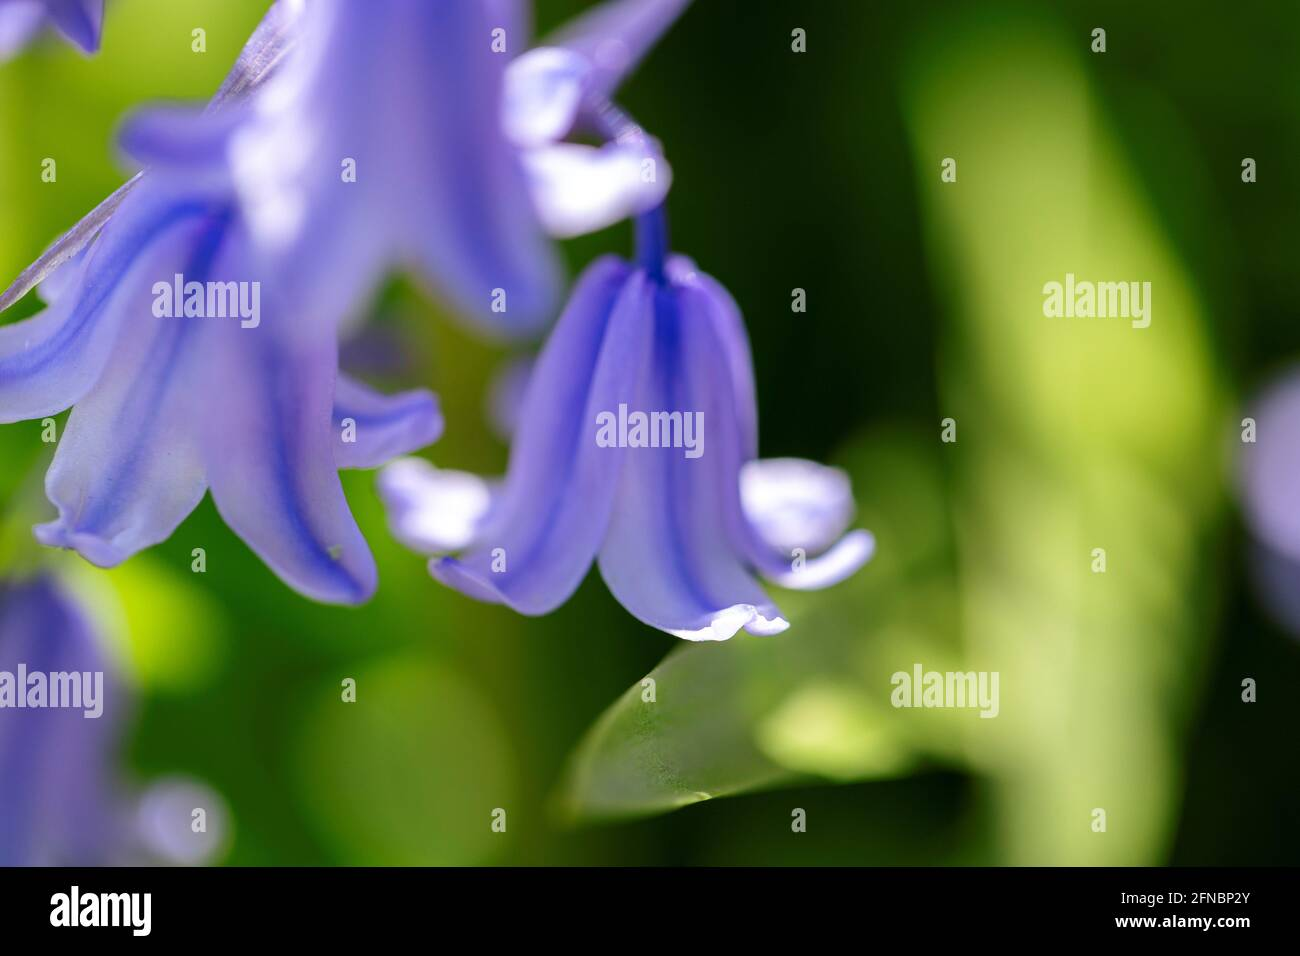 A portrait of a wild hyacinth, also known as a common bluebell flower, in a garden. The latin name of the plant is hyacinthoides non-scripta and is a Stock Photo